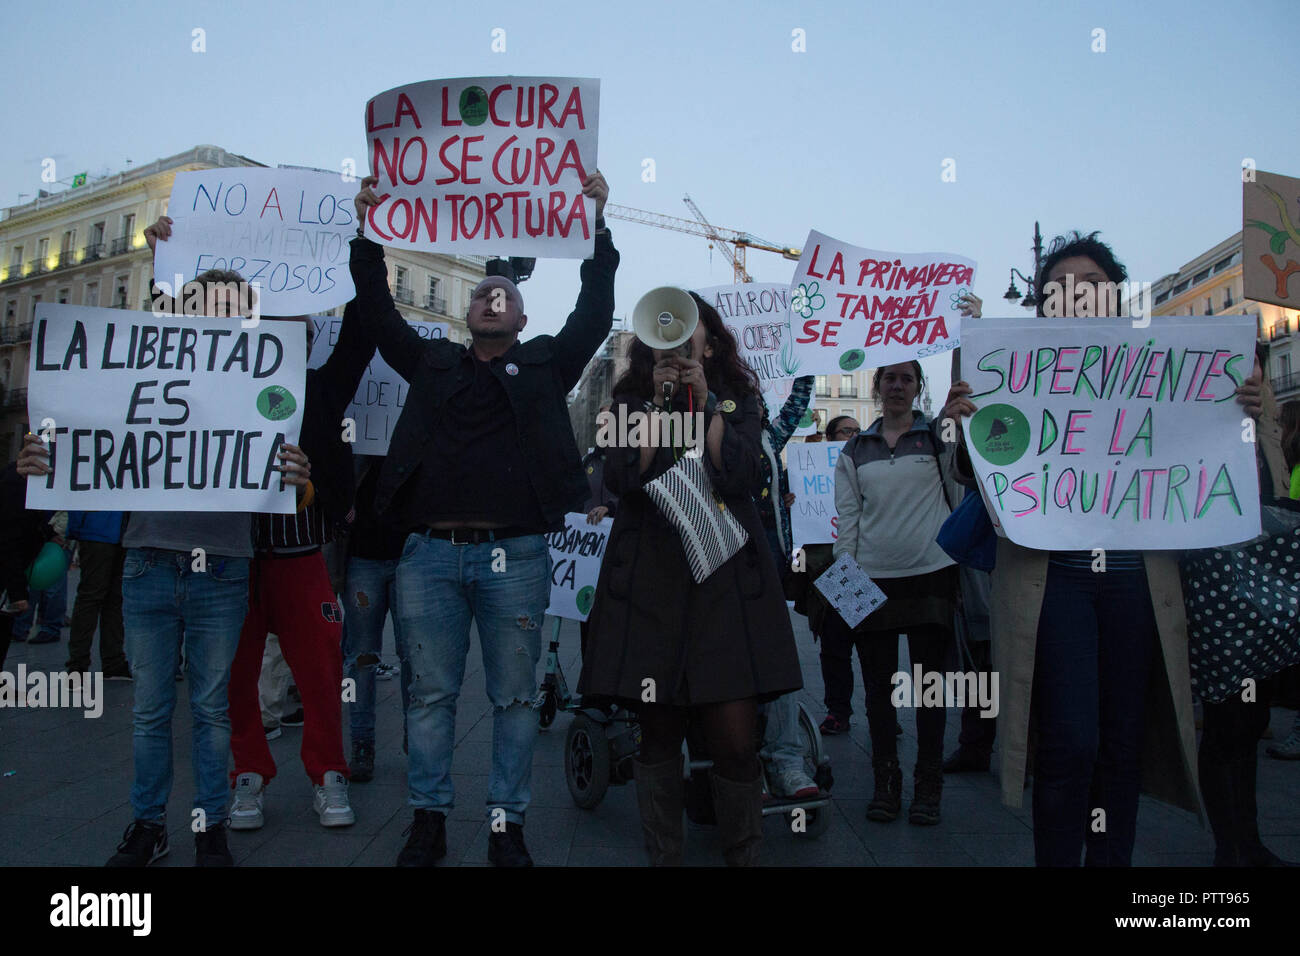 Madrid, Spain. 10th Oct, 2018. Protesters are seen holding posters while shouting during the protest.Hundreds of people have protested from Atocha to Puerta Del Sol against the labels that society puts on them on the International Mental Health Day where the Spanish public health system has demanded for an improvement in the matters of Mental Health, the public health system has also criticized the budget cuts in the Mental Health. Credit: Lito Lizana/SOPA Images/ZUMA Wire/Alamy Live News - Stock Image